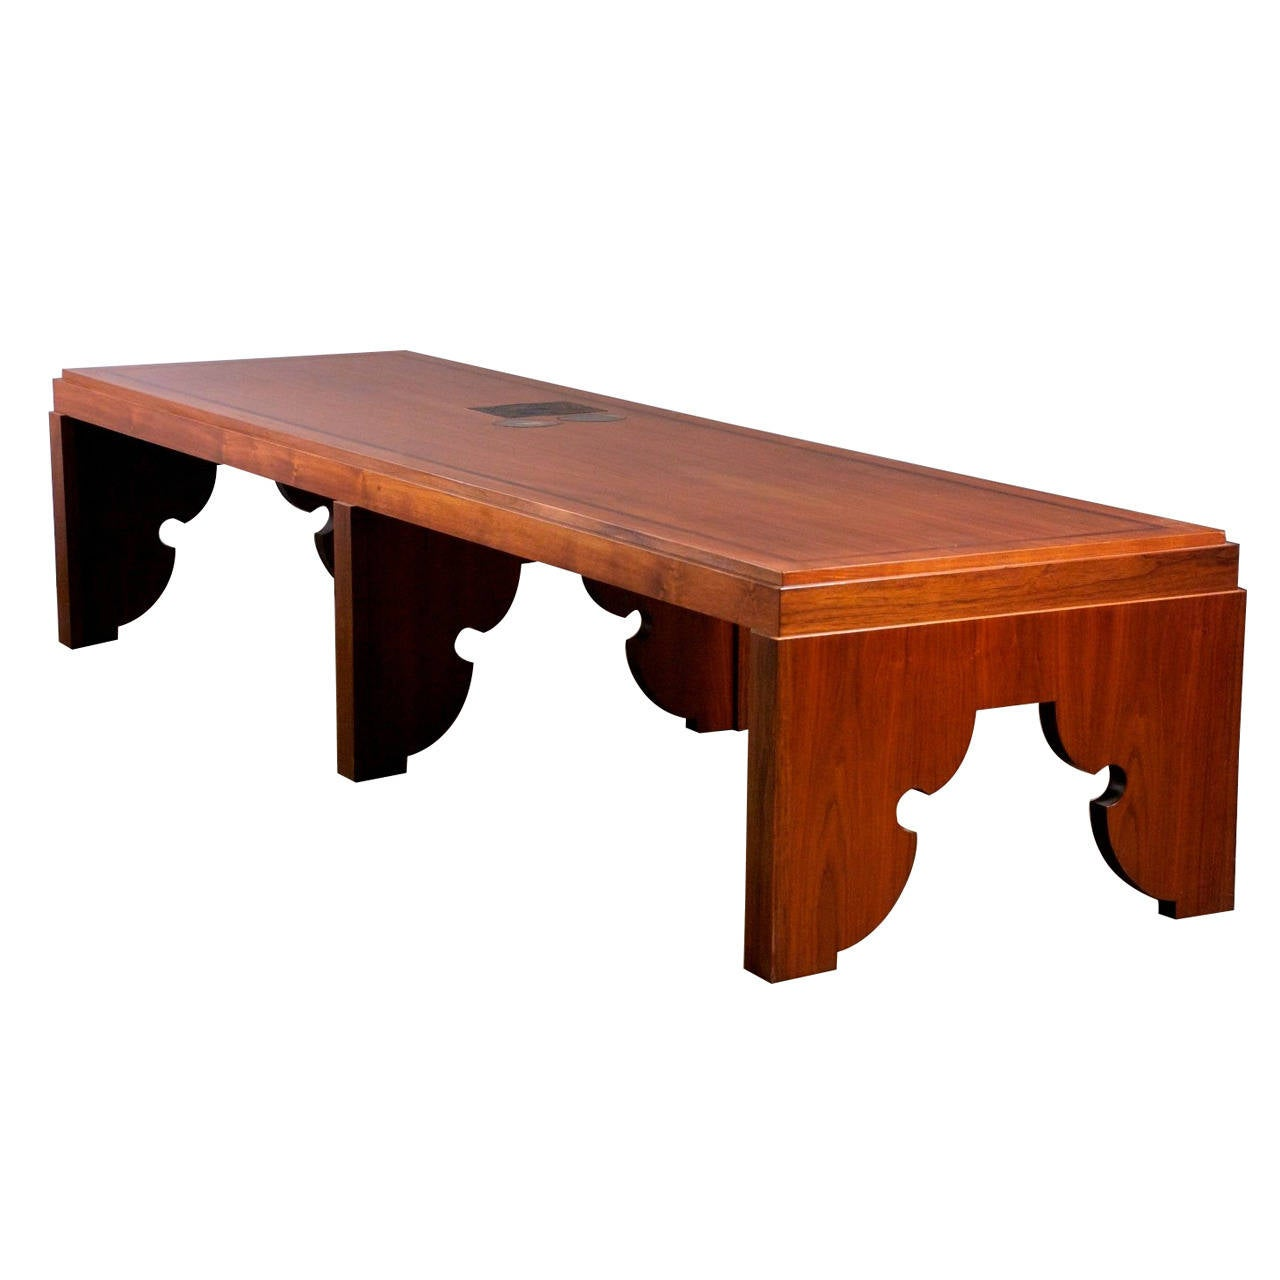 Huge custom center coffee table at 1stdibs for Center coffee table furniture